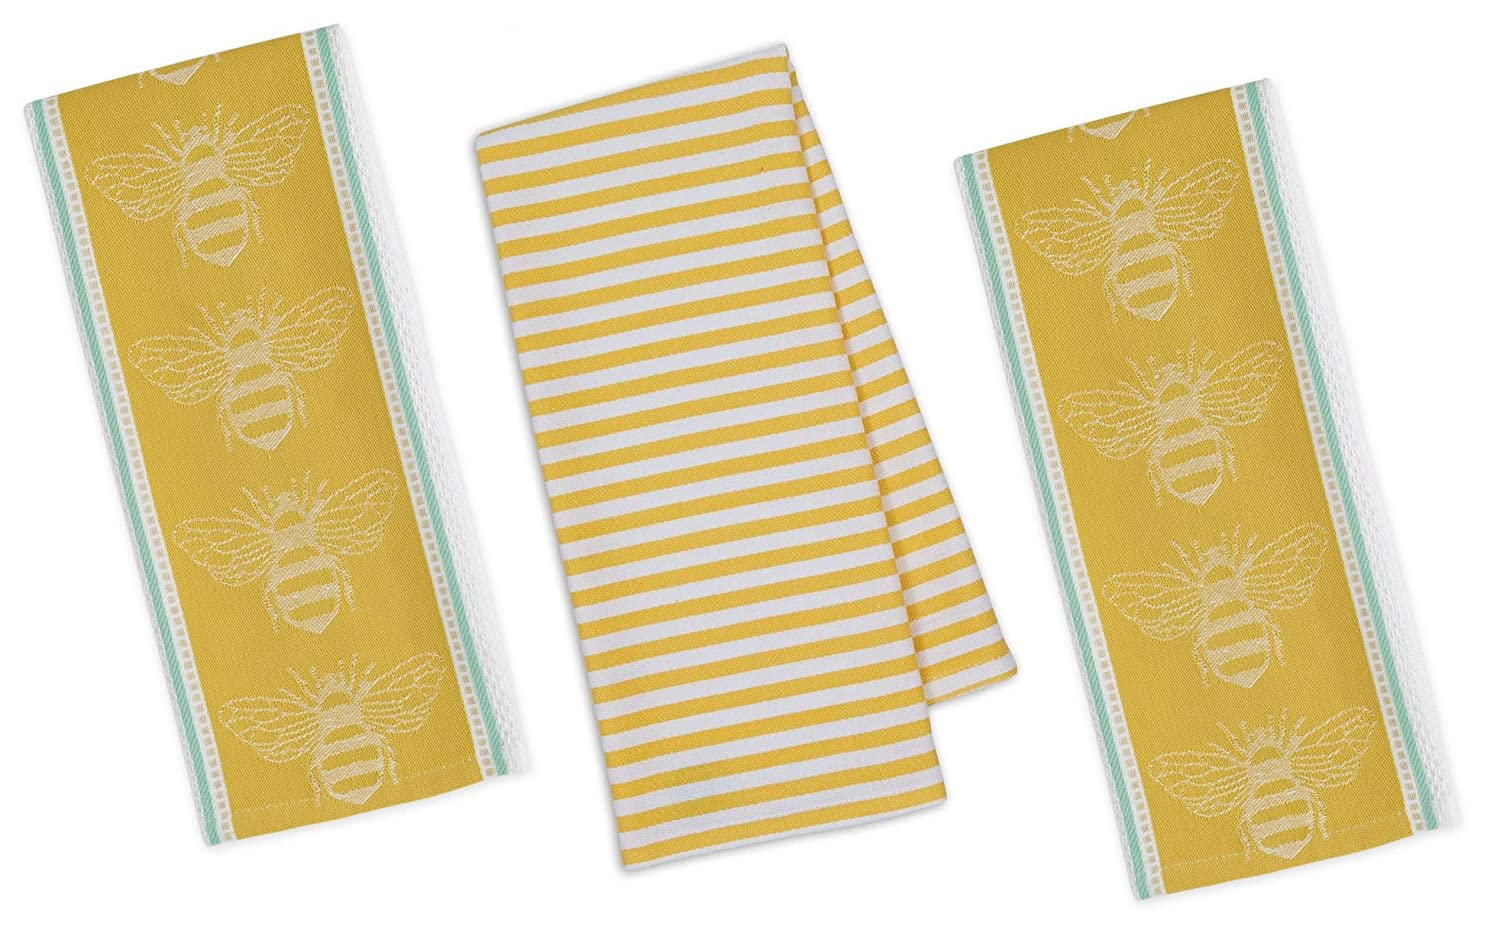 Honey Bee Kitchen Towels | Set of 3 Cotton Decorative Towels for Dish and Hand Drying | 18 inch x 28 inch